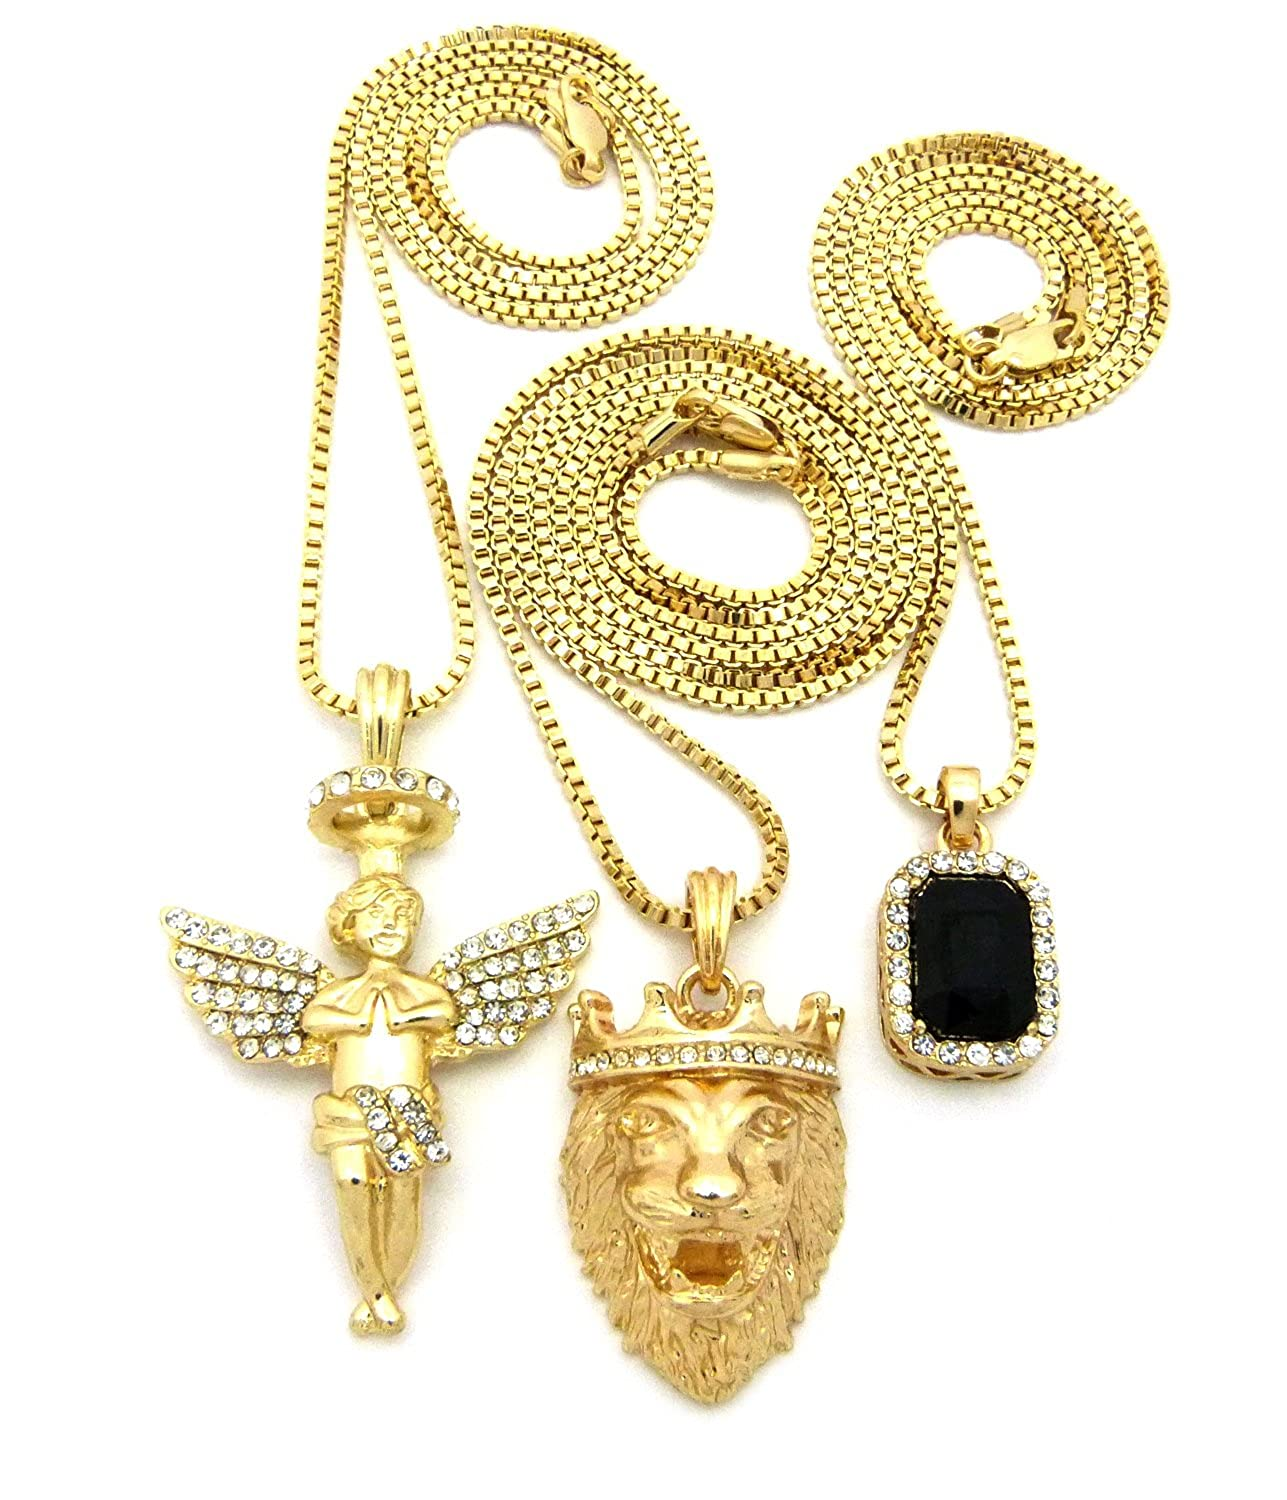 king lion pendant product millions image chain kruger of